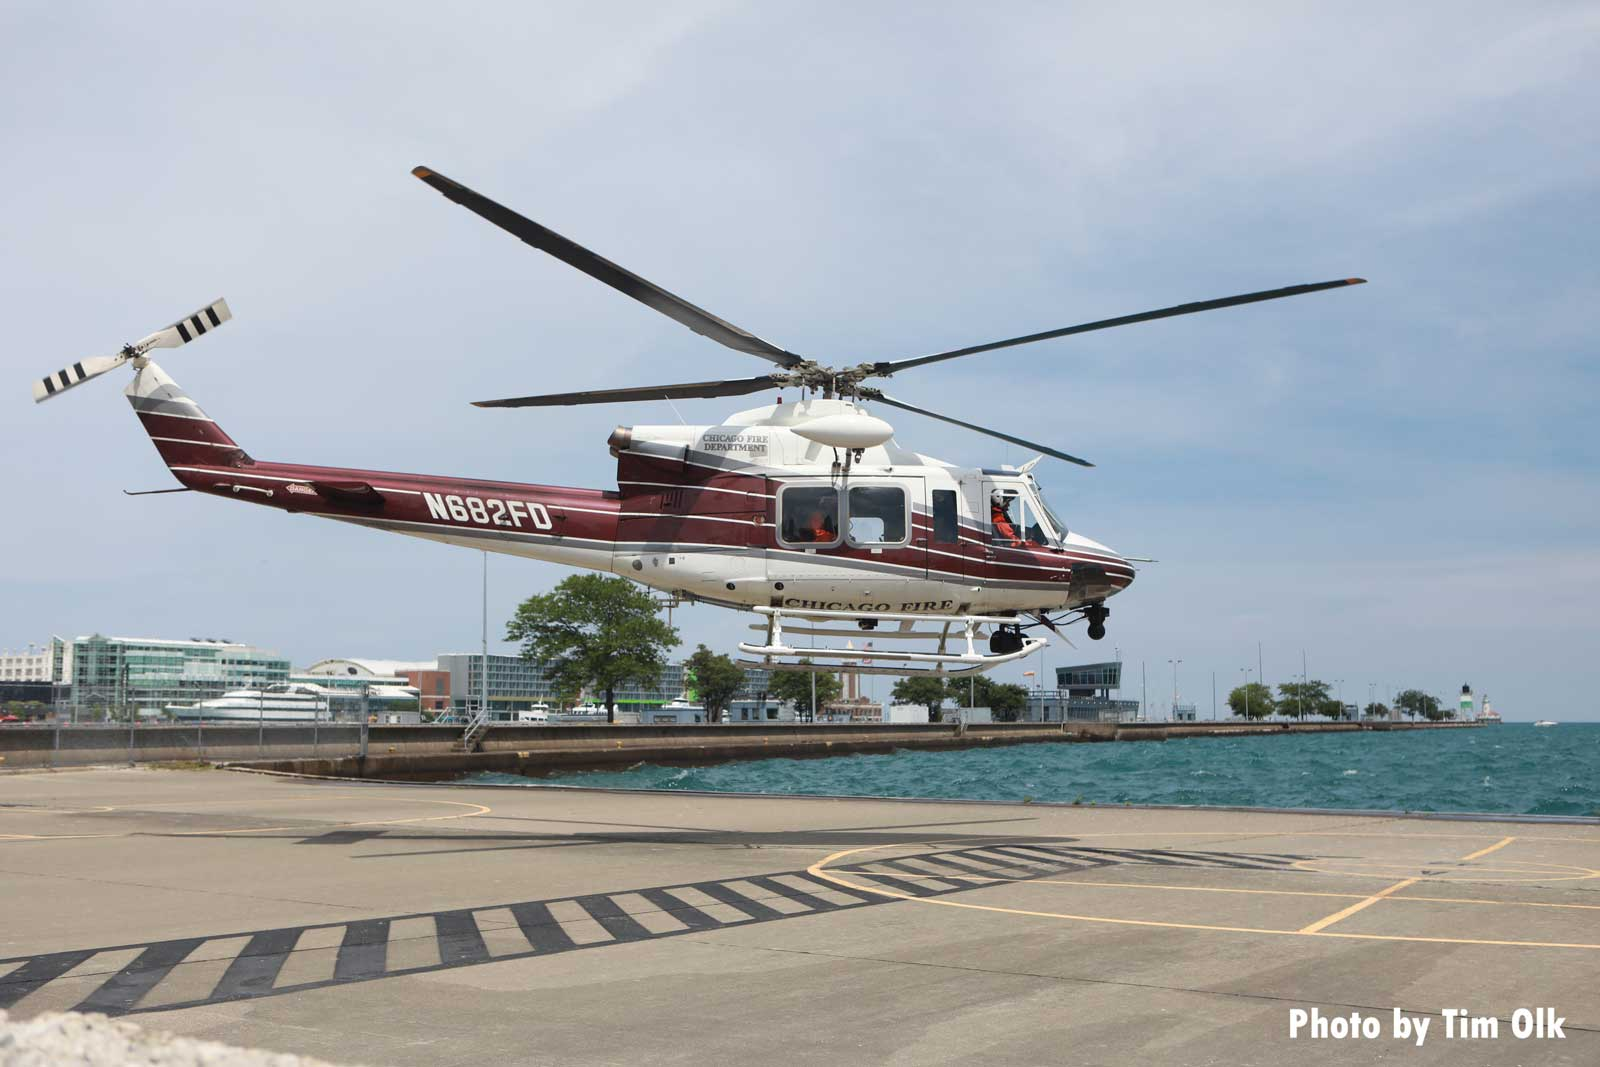 Chicago Fire Department helicopter hovers over launch area